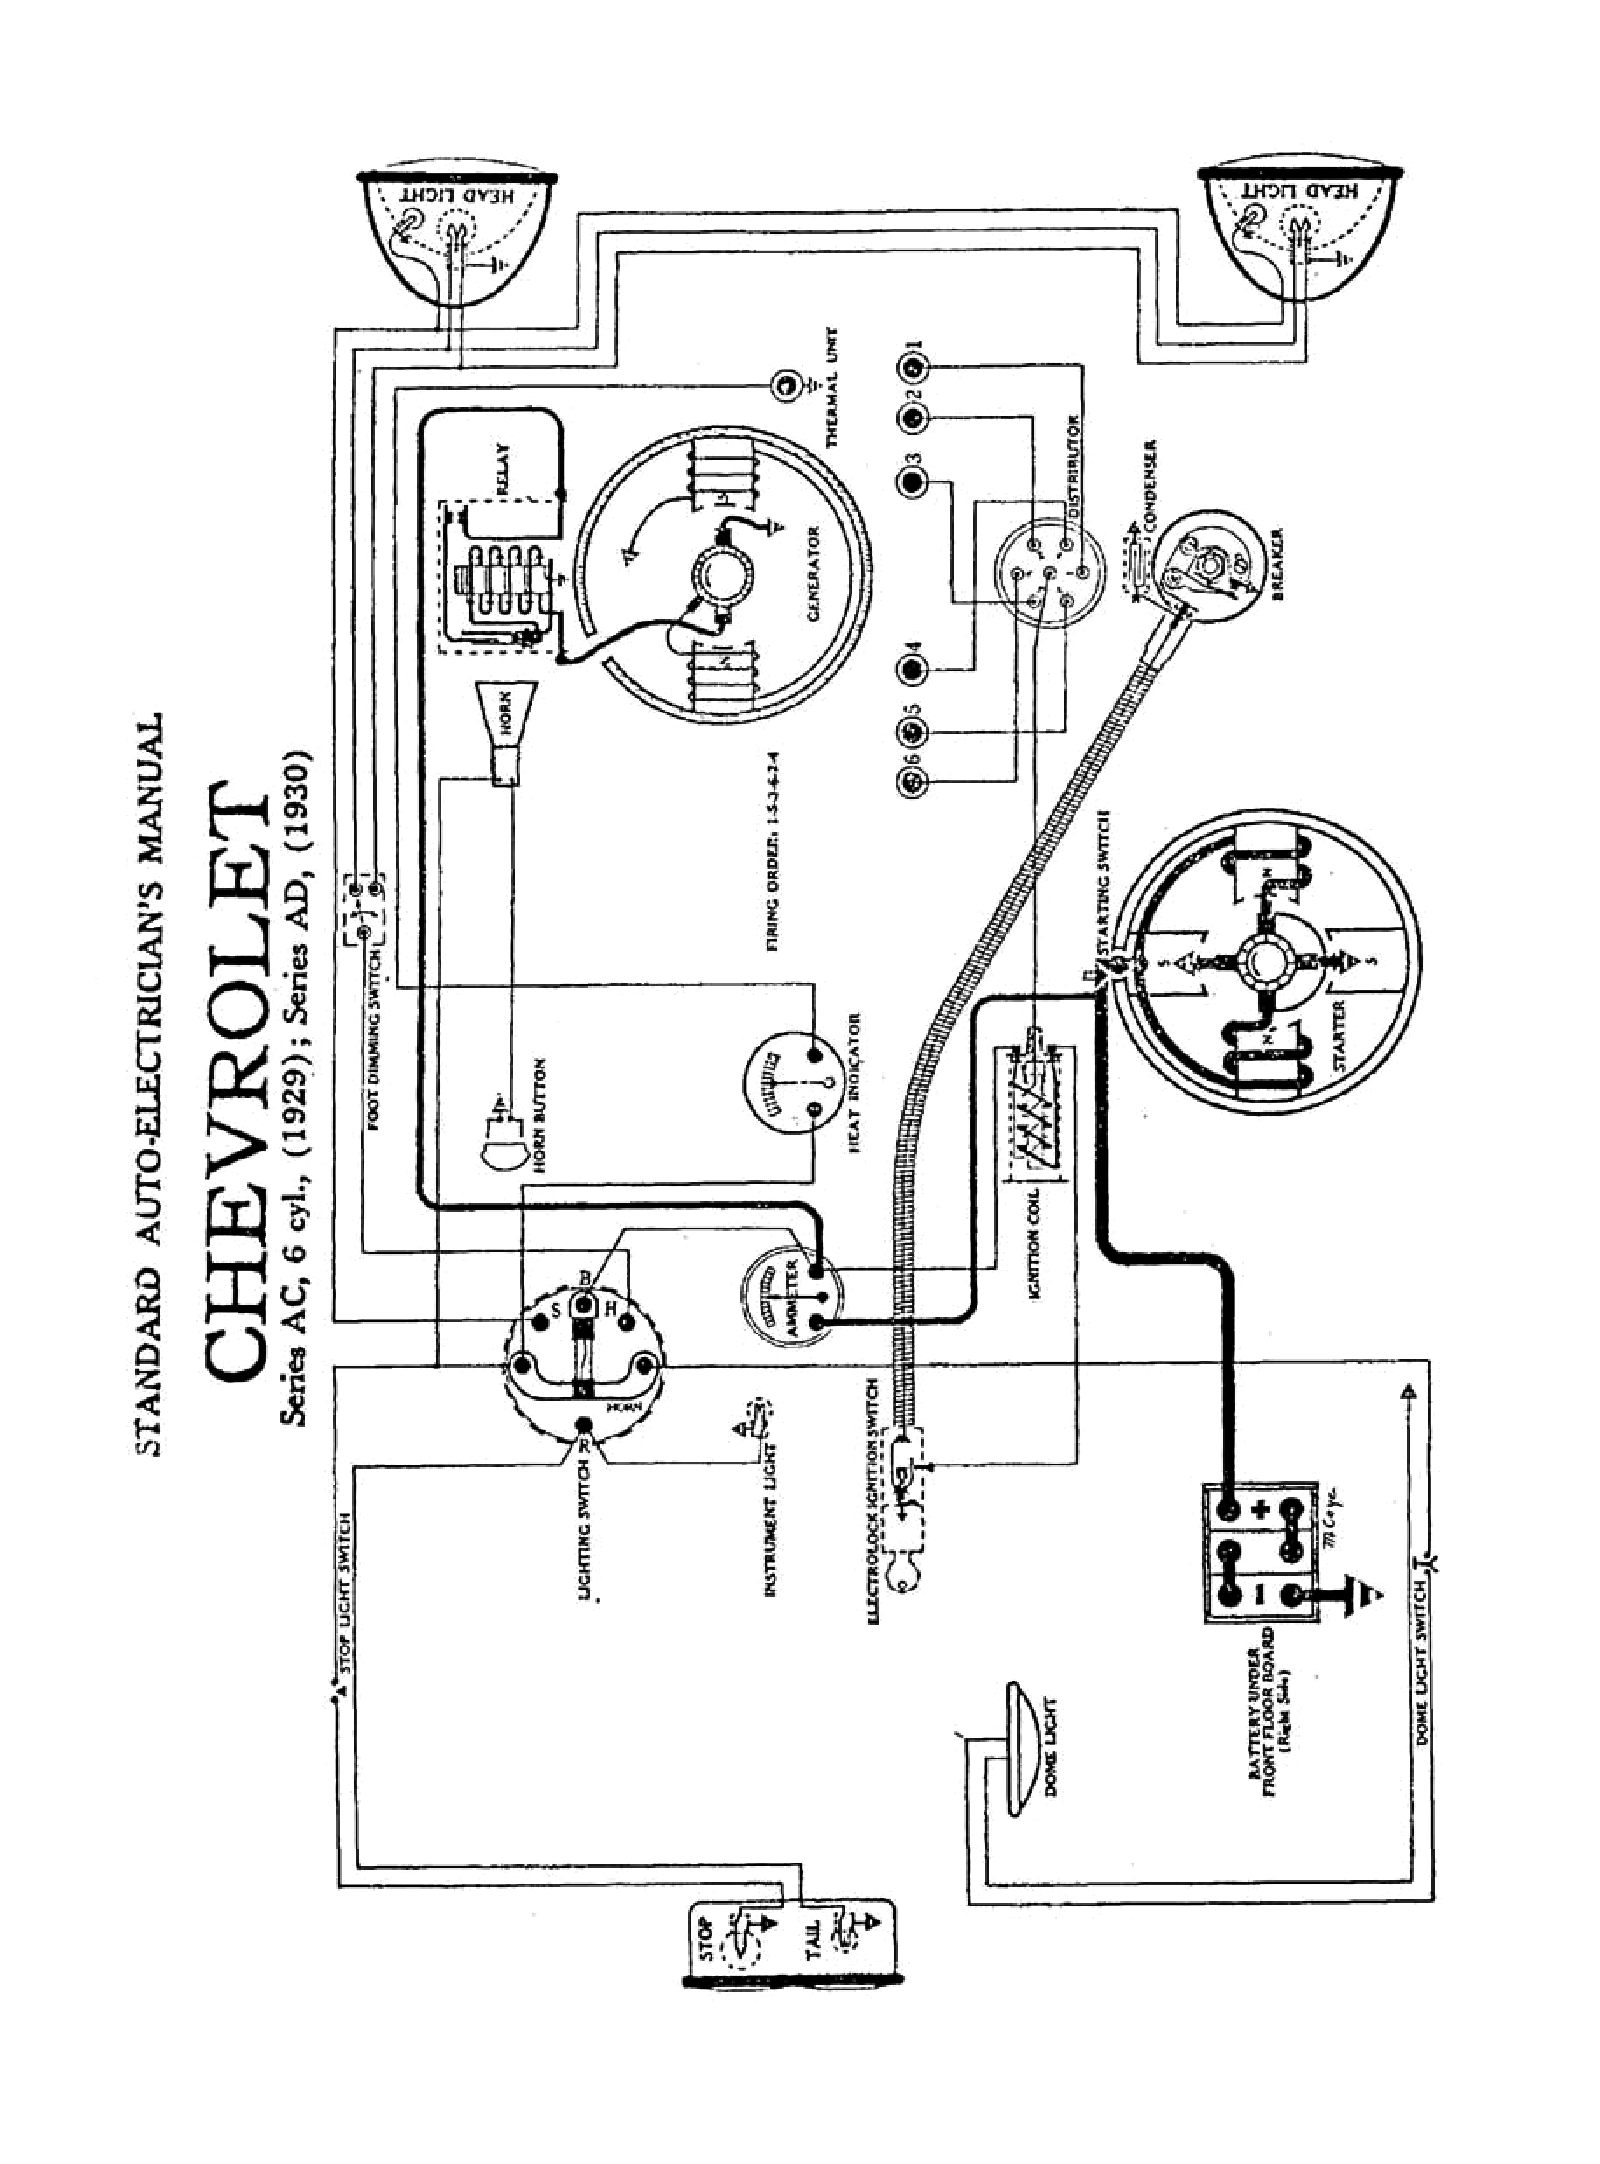 Wiring Schematics In Series Diagram Circuit Symbols How To Read Appliance Chevy Diagrams Rh Oldcarmanualproject Com Refrigerator Schematic Electrical